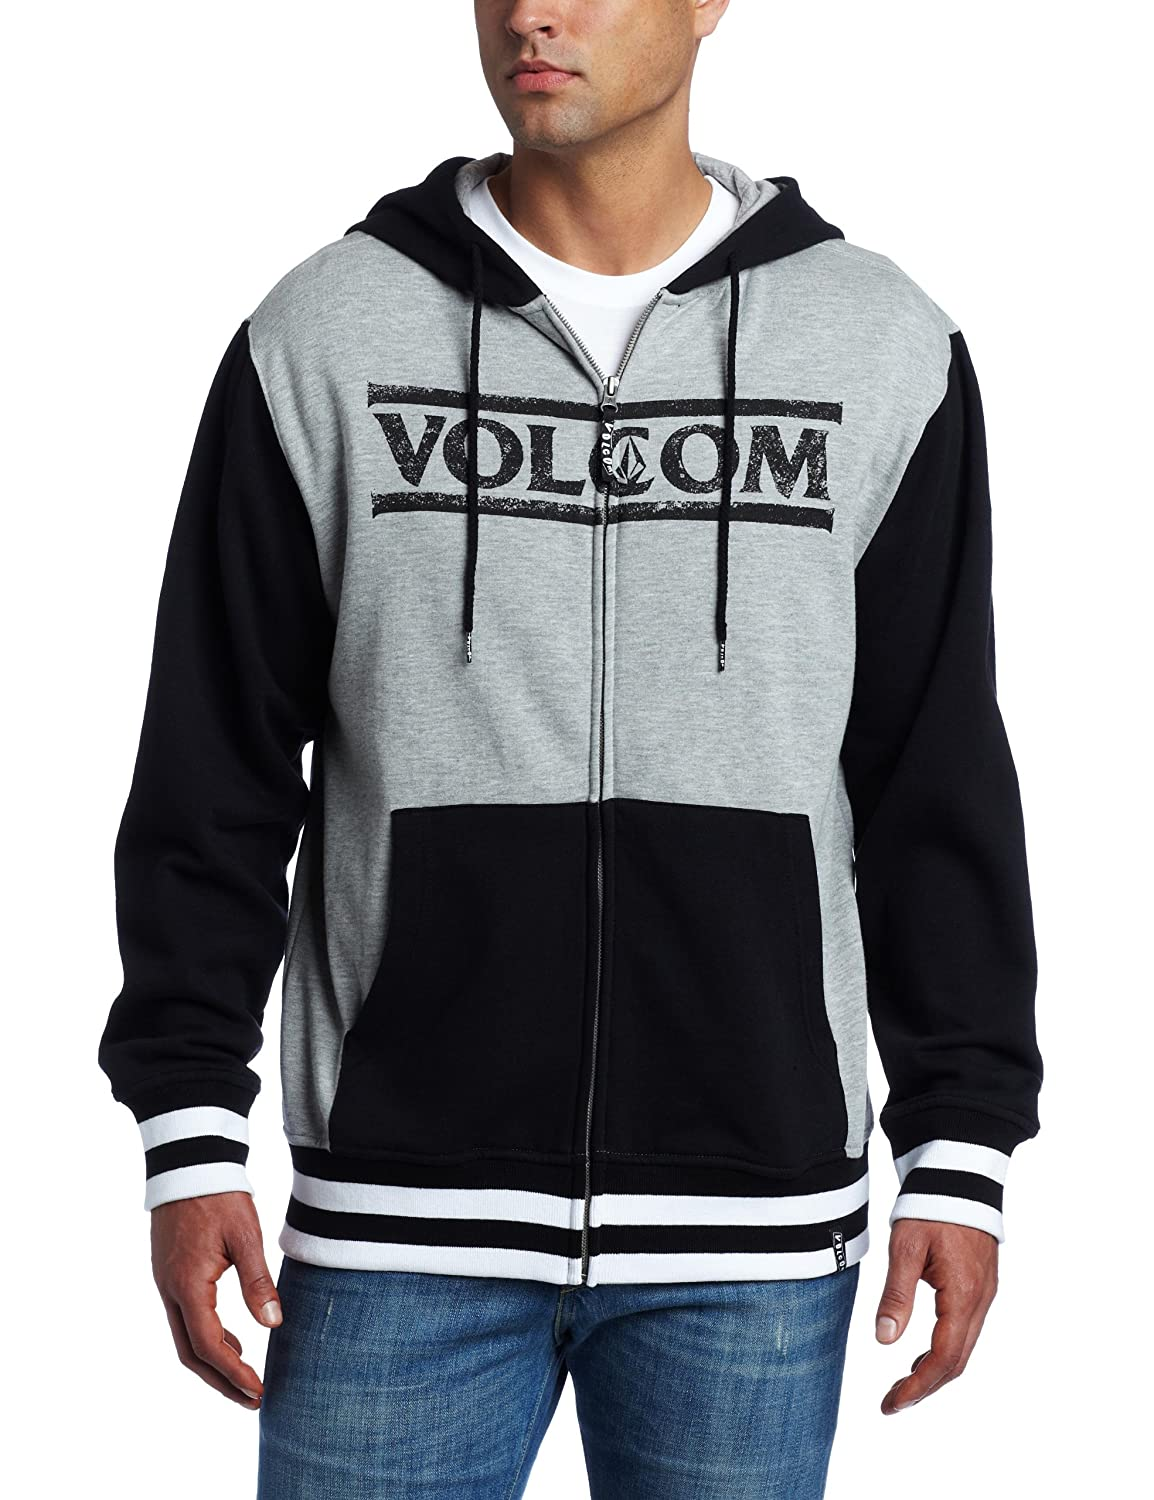 50% Off Men's Hoodies and Sweatshirts (Today Only Aug-28)